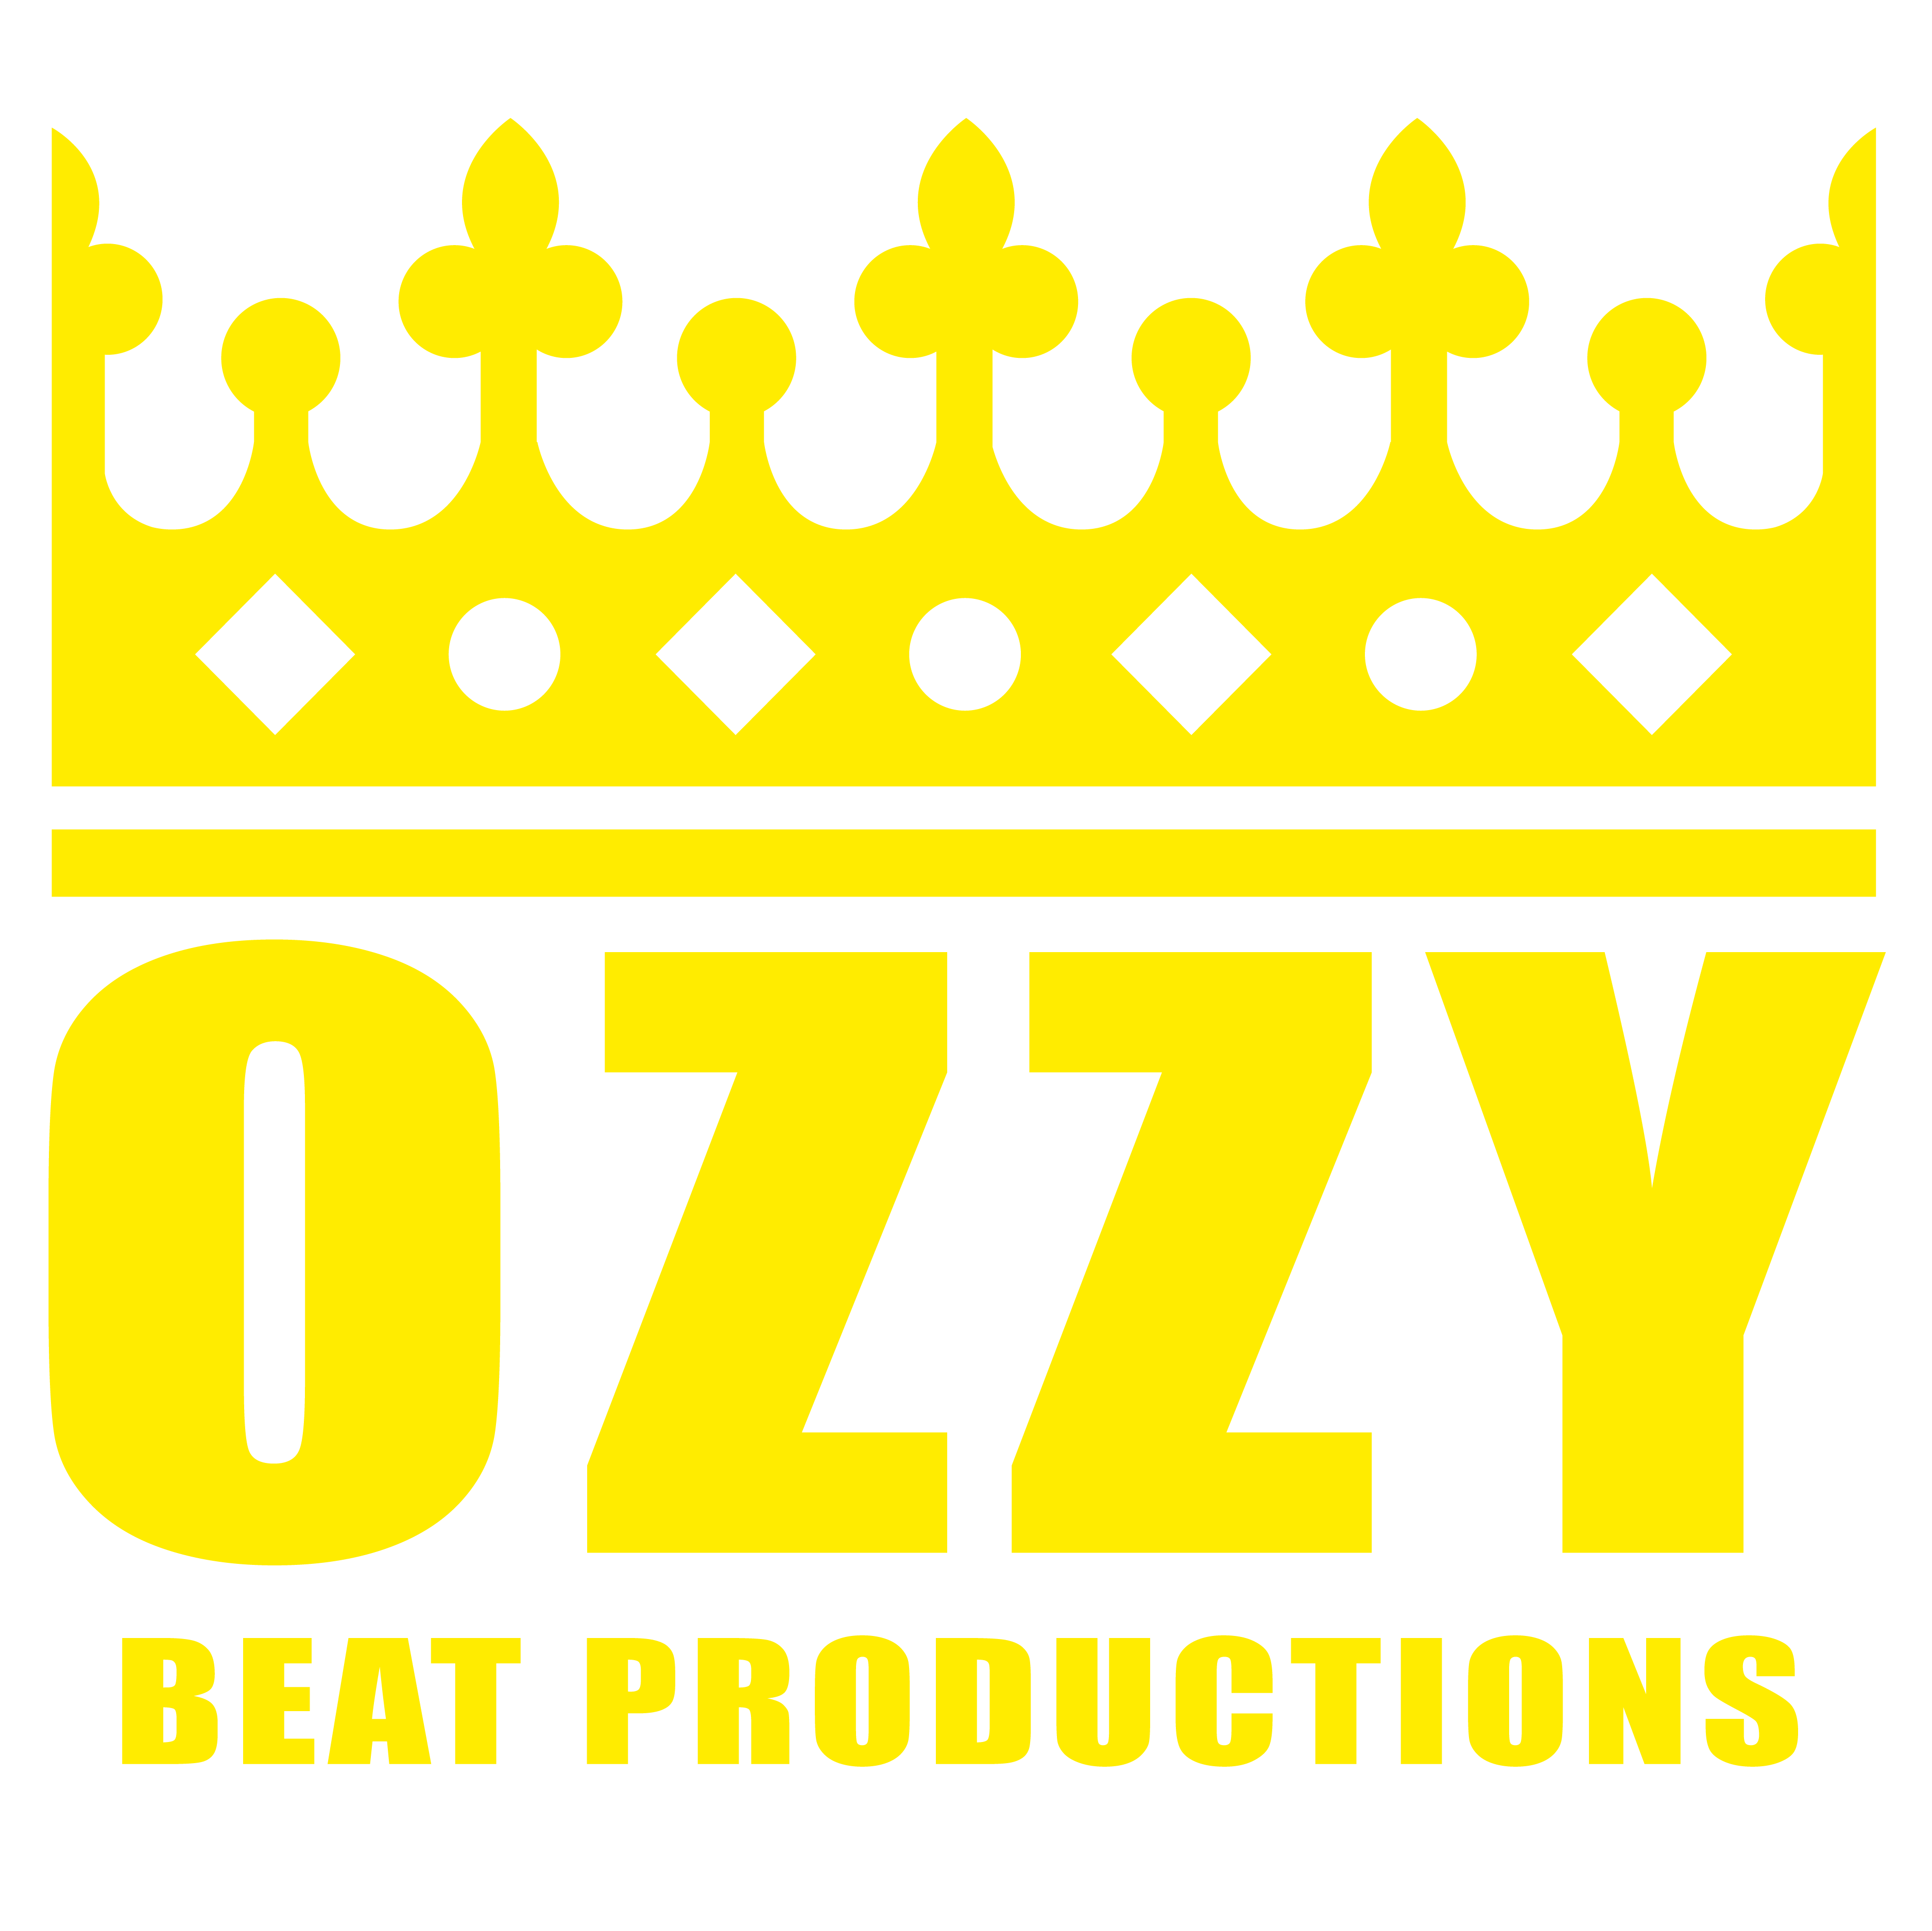 OZZY BEAT PRODUCTIONS